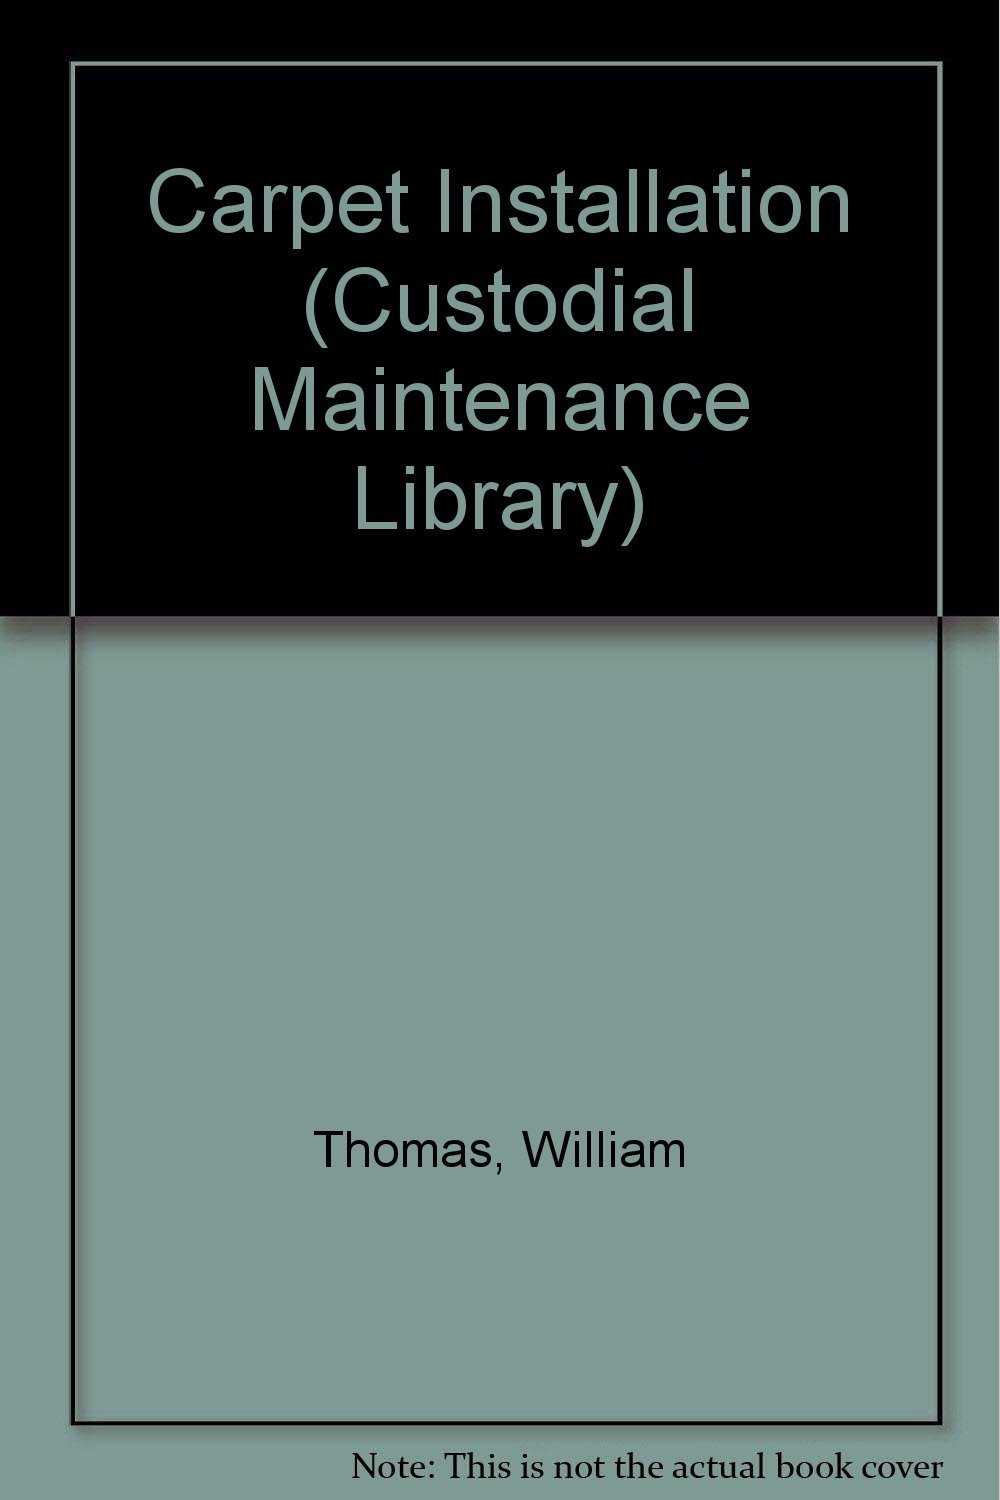 Carpet Installation (Custodial Maintenance Library)